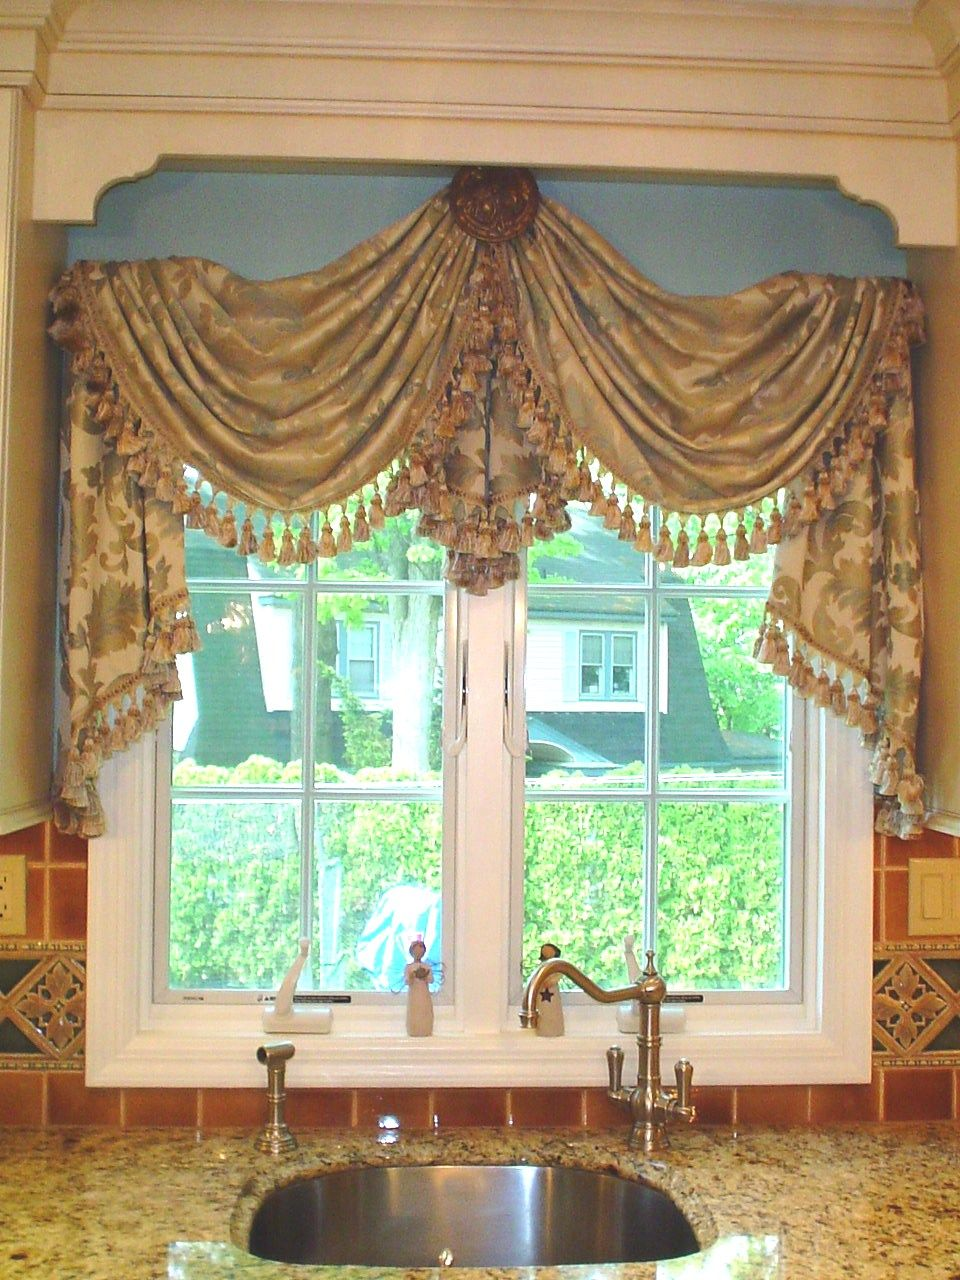 Swag kitchen curtains - Instead Of Just A Valance Or Curtains Why Not Hang A Swag From A Center Medallion Over Your Kitchen Window